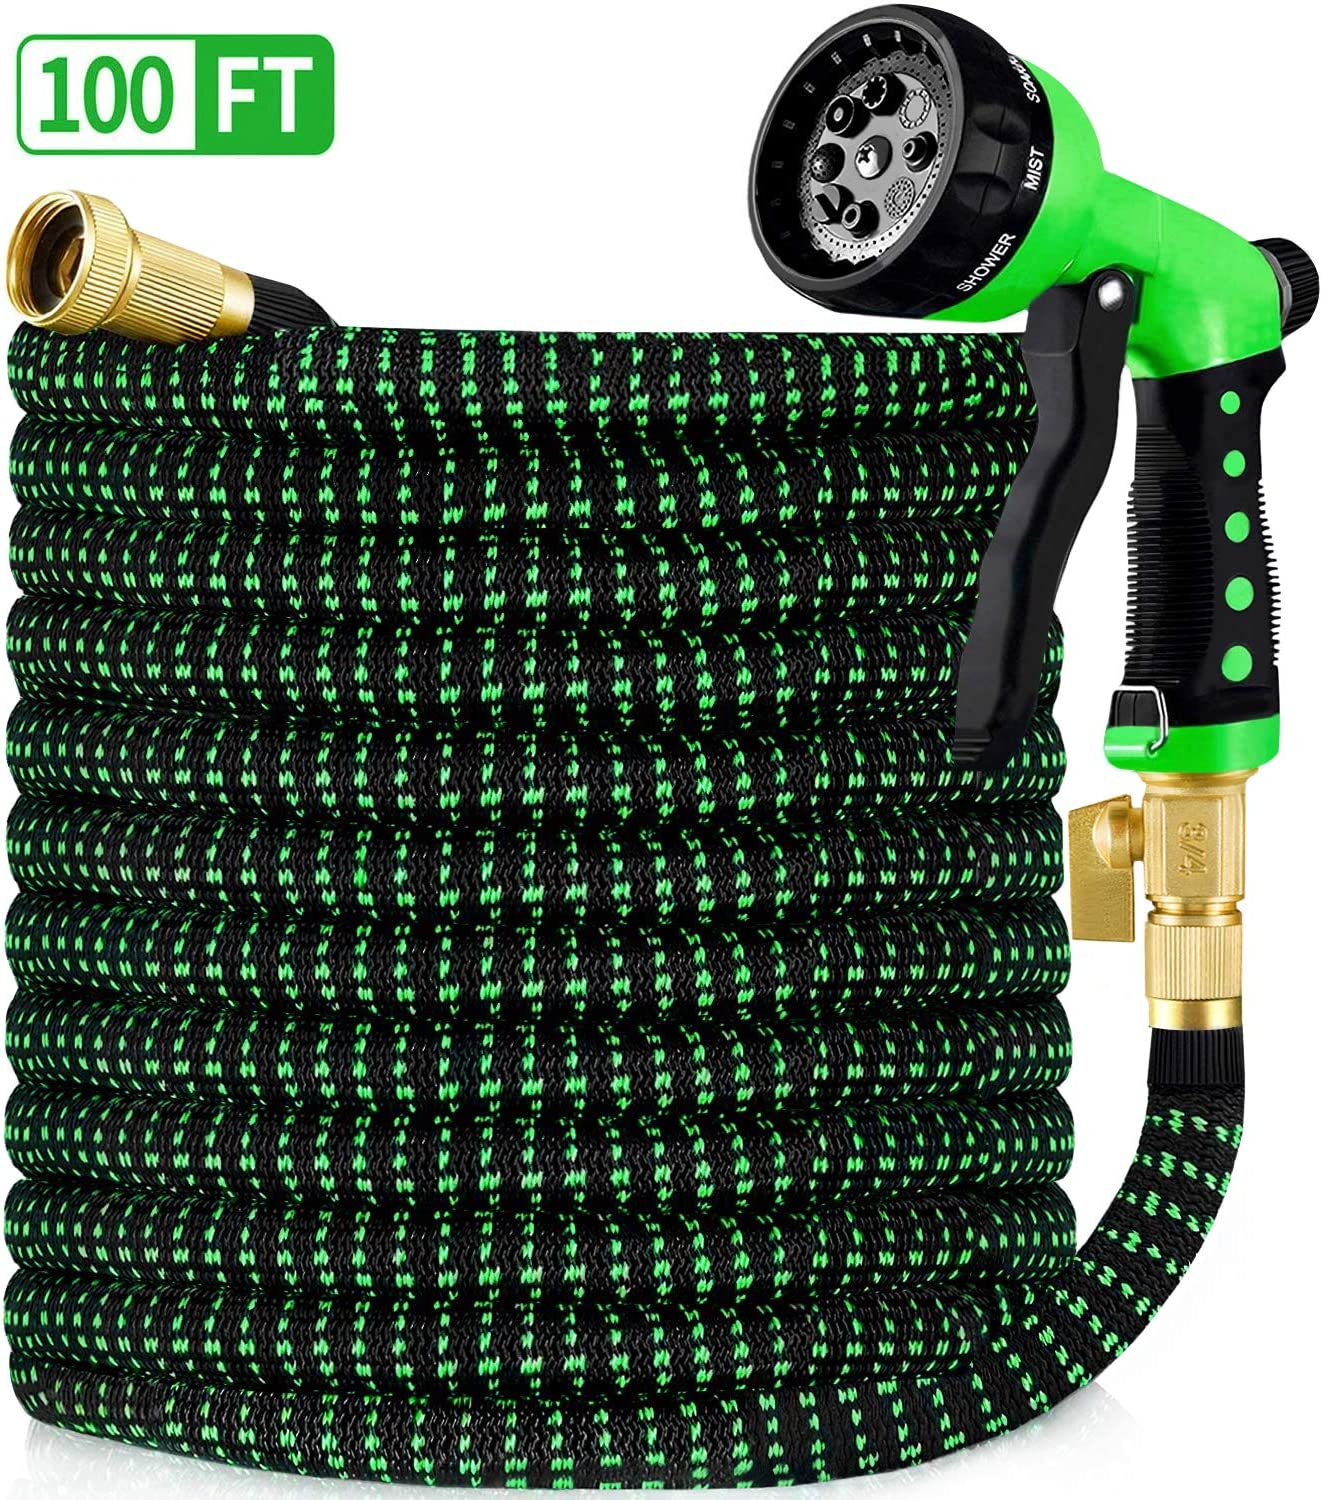 "HBlife 100ft Garden Hose, All New 2020 Expandable Water Hose with 3/4"" Solid Brass Fittings, Extra Strength Fabric - Flexible Expanding Hose with Free Water Spray Nozzle"